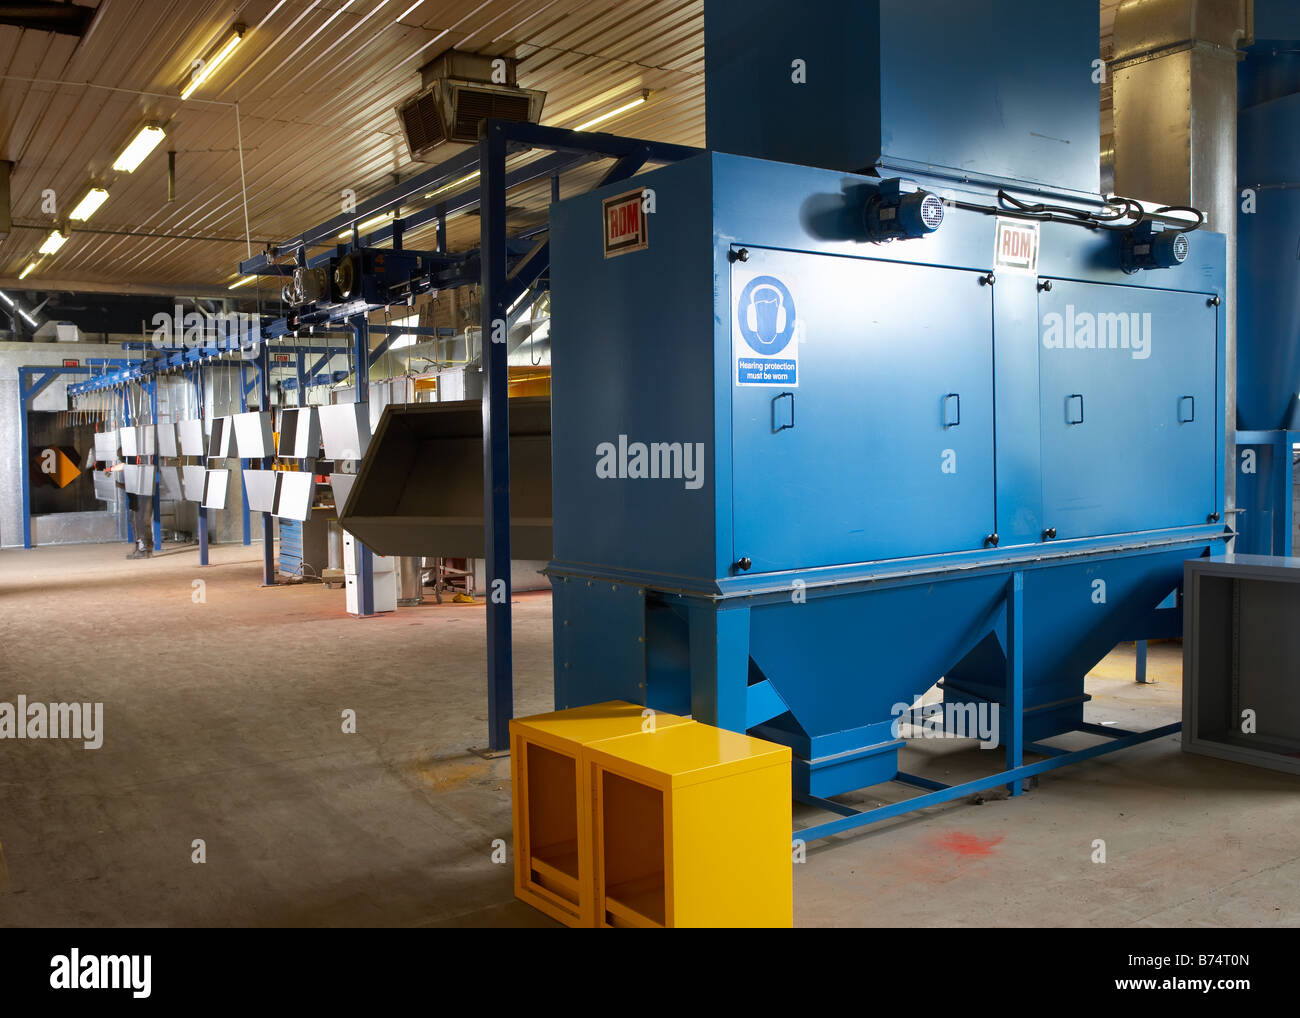 FACTORY ENGINEERING MANUFACTURING DUST EXTRACTION EQUIPMENT - Stock Image